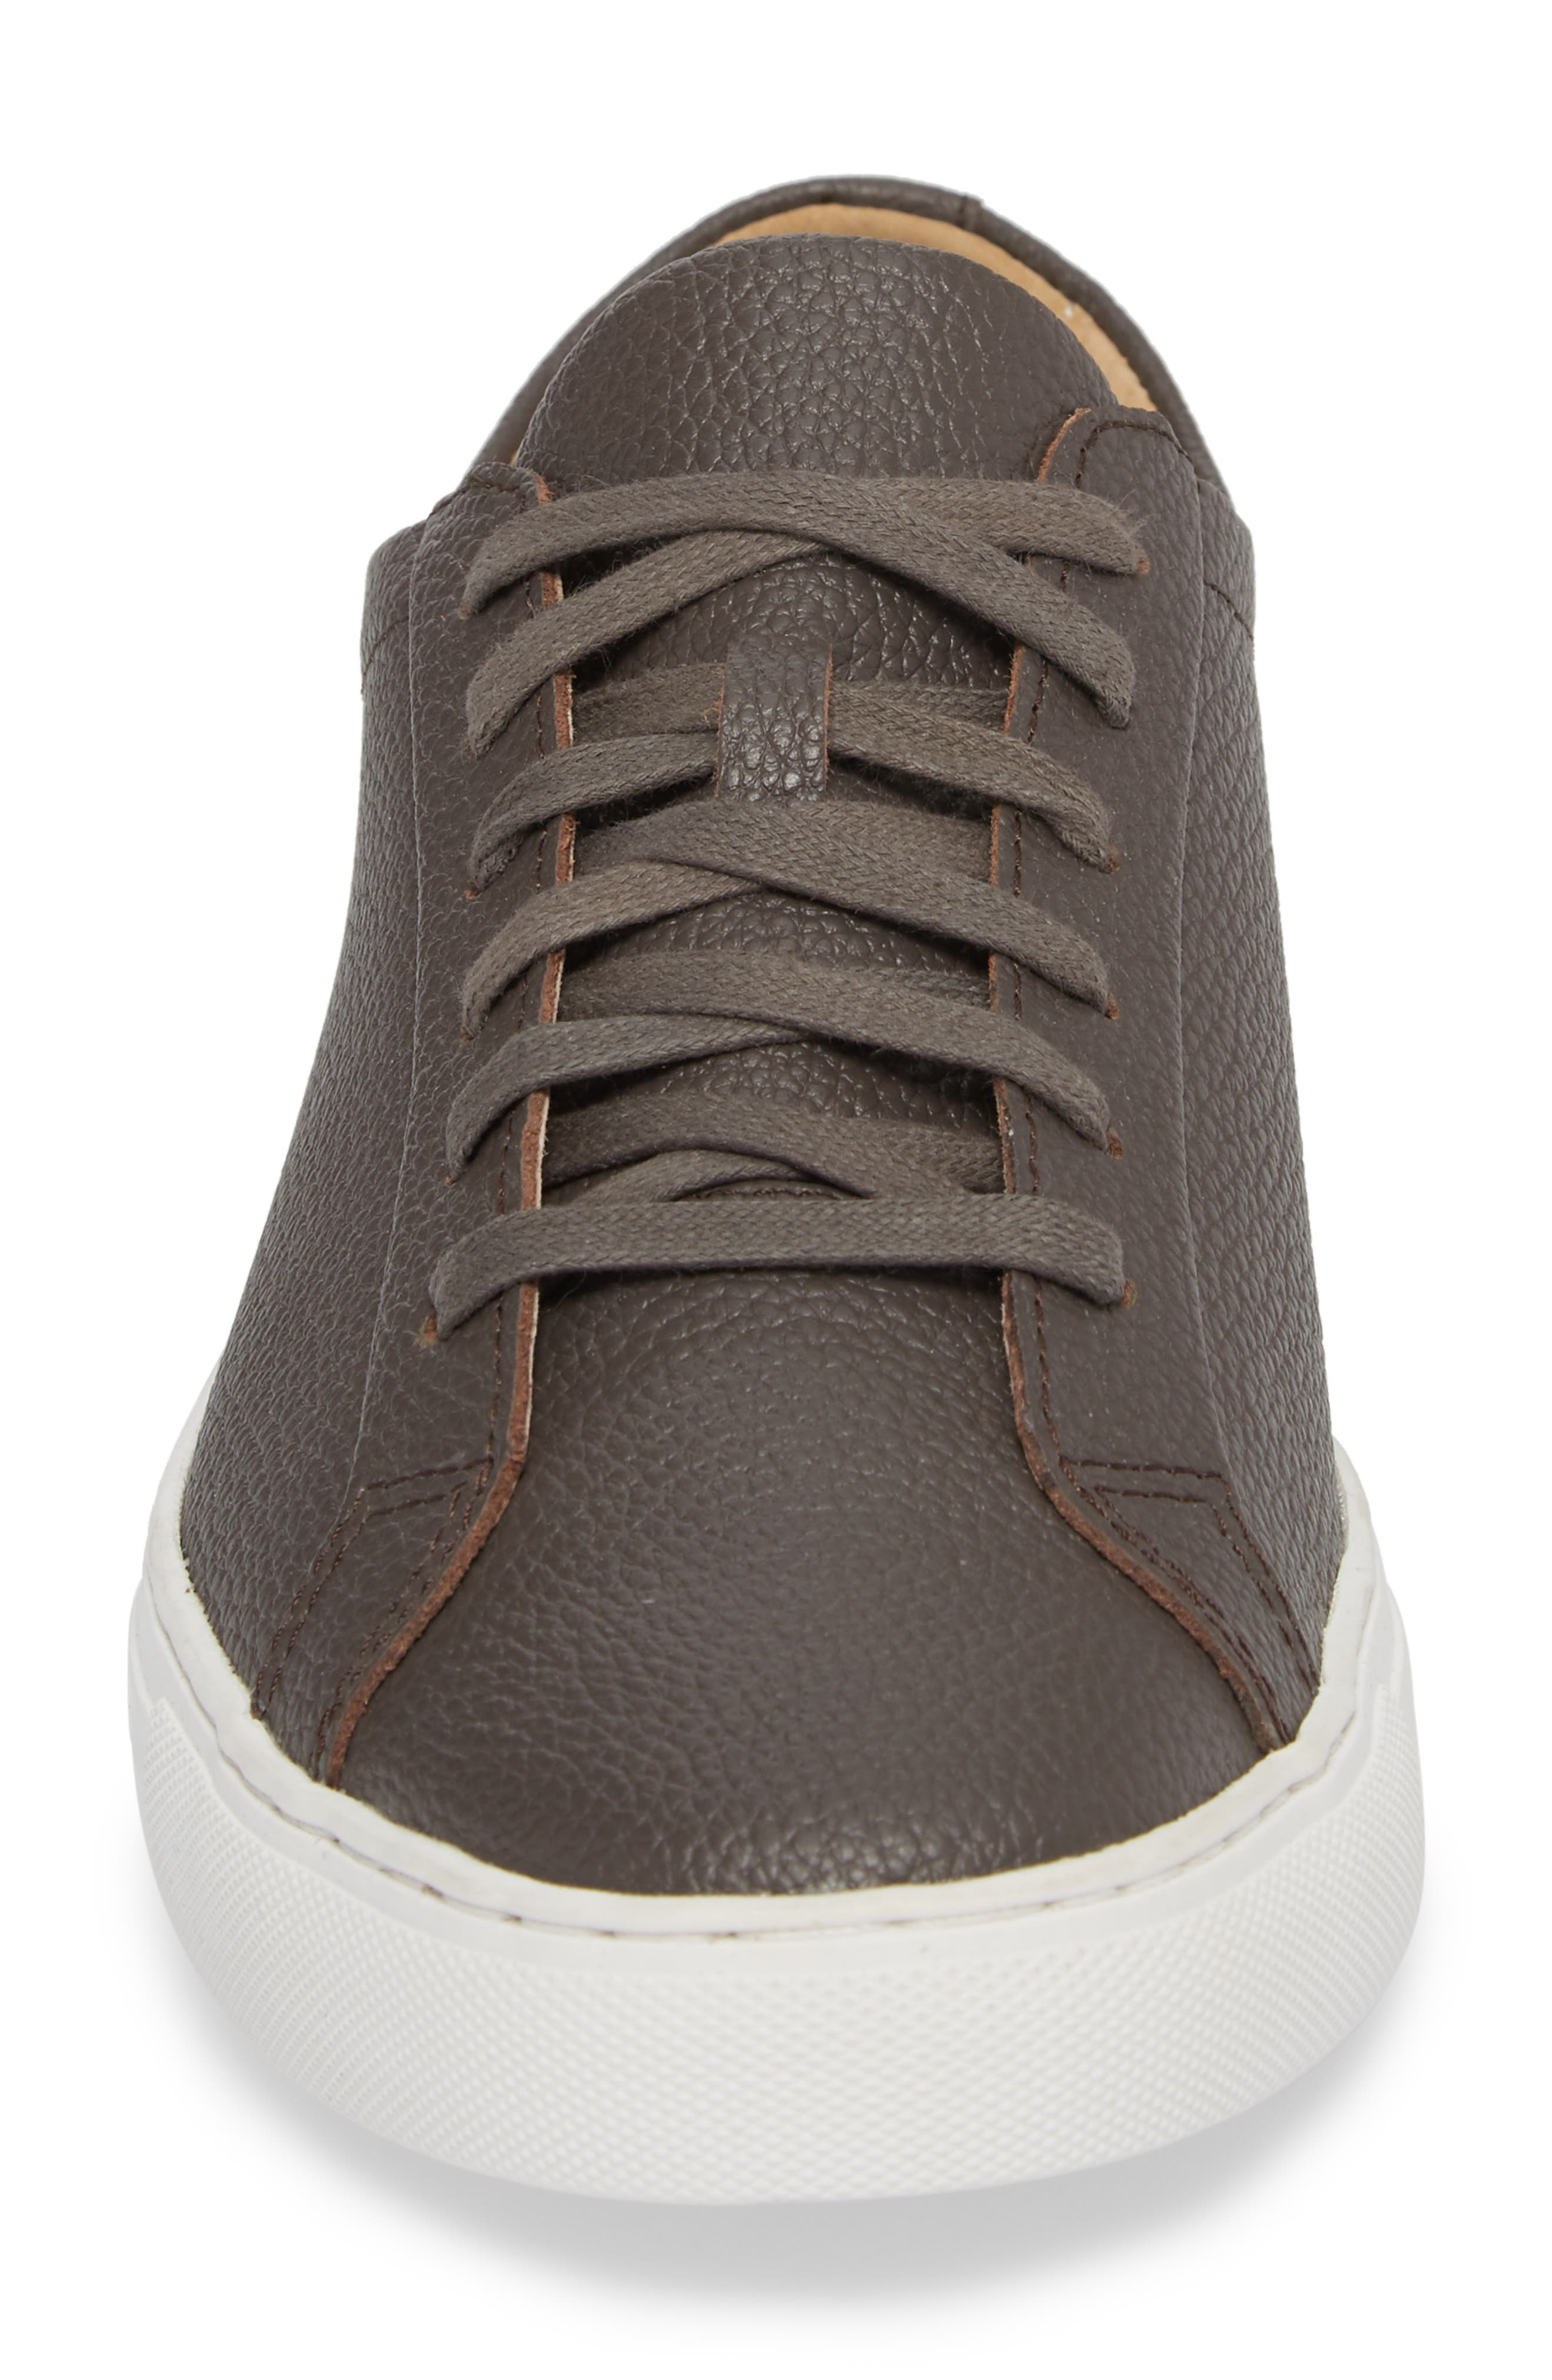 Kennedy Low Top Sneaker,                             Alternate thumbnail 4, color,                             FALCON LEATHER